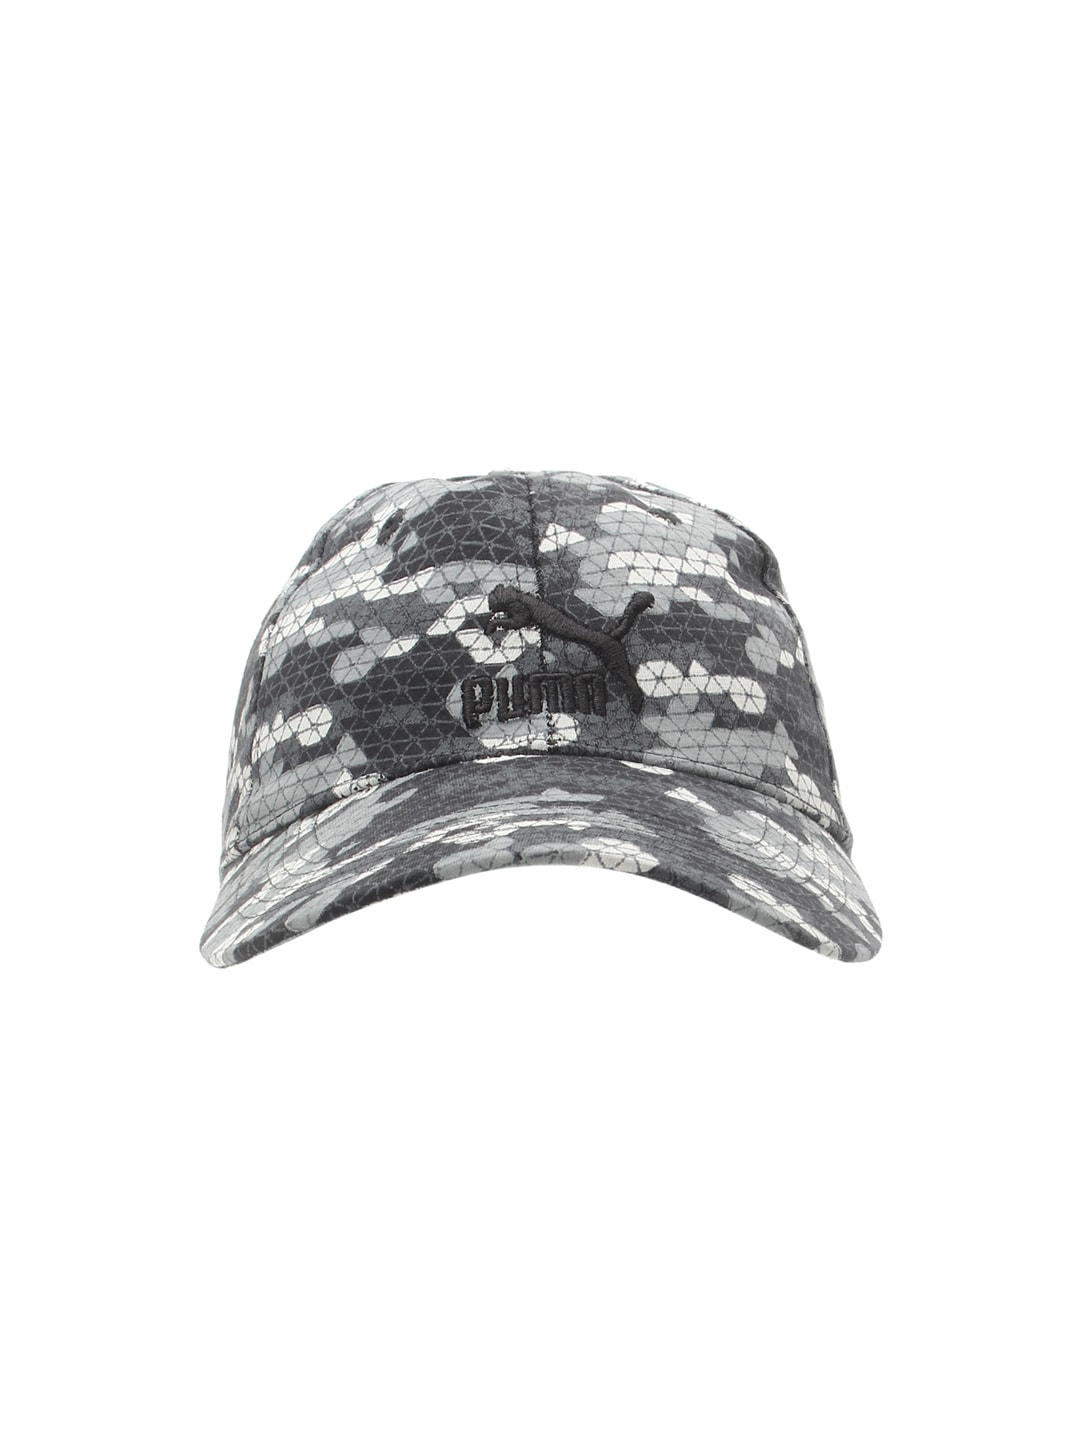 f541185186c Puma Motorola Caps - Buy Puma Motorola Caps online in India